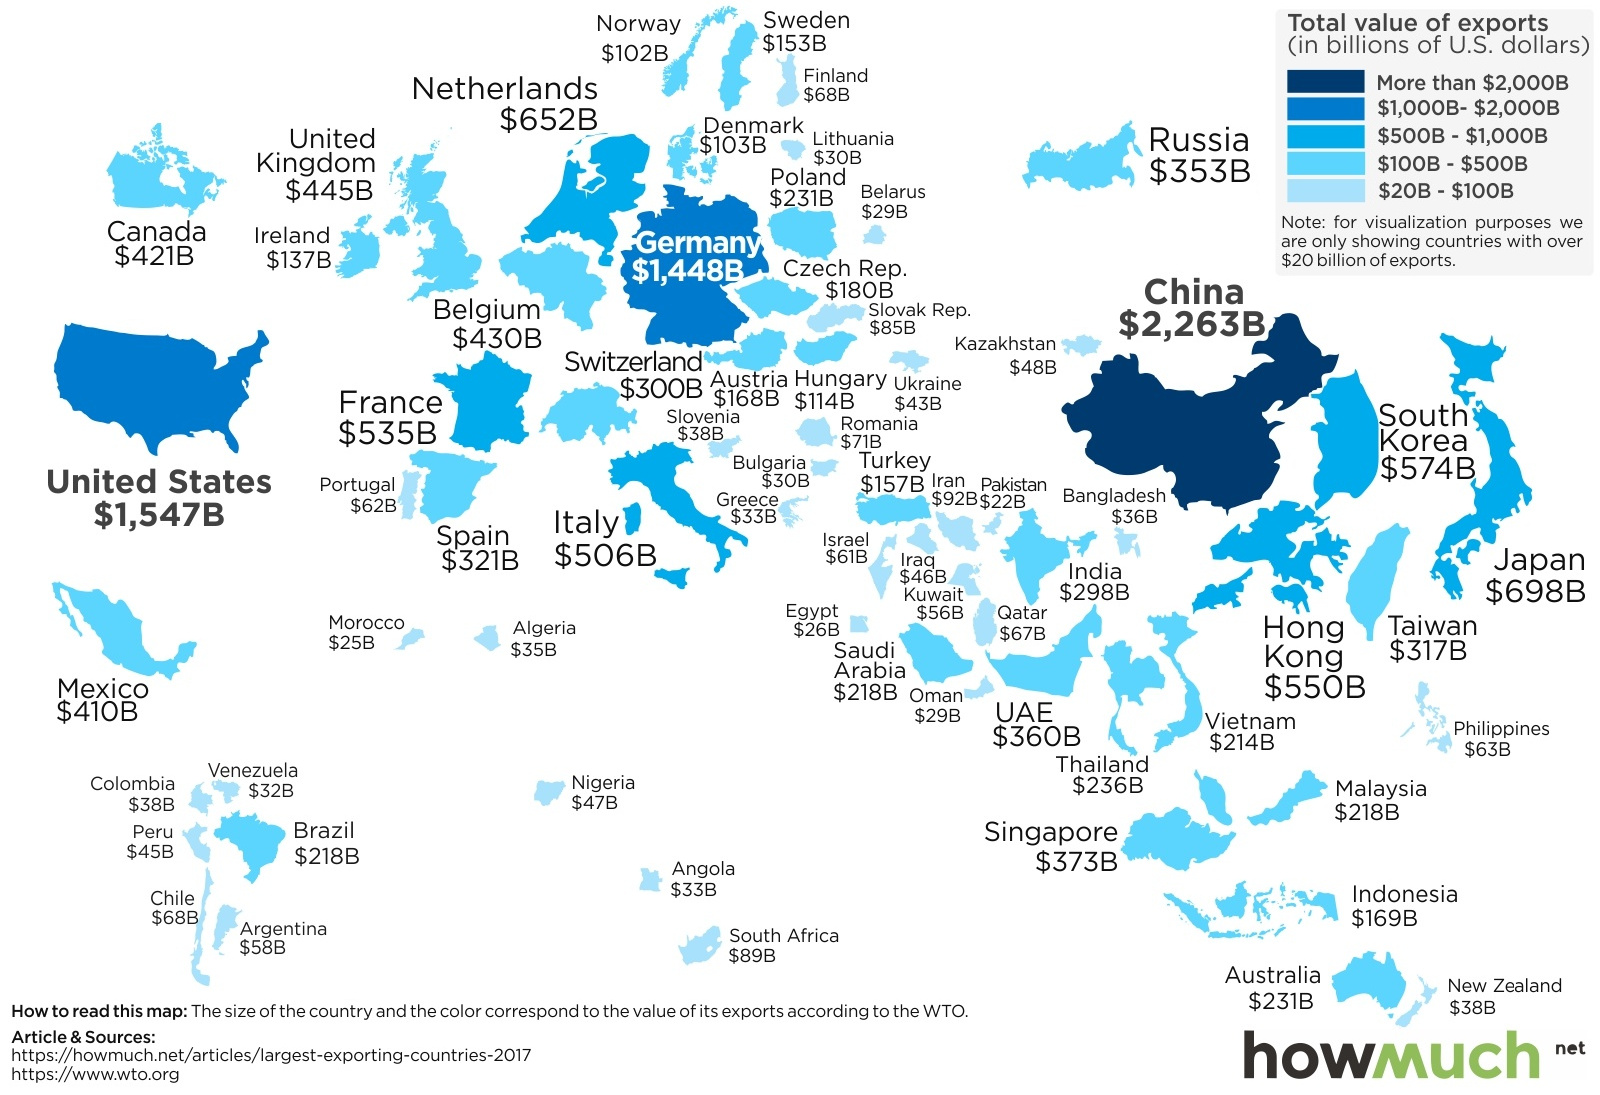 Visualizing the World's Biggest Exporters in 2017